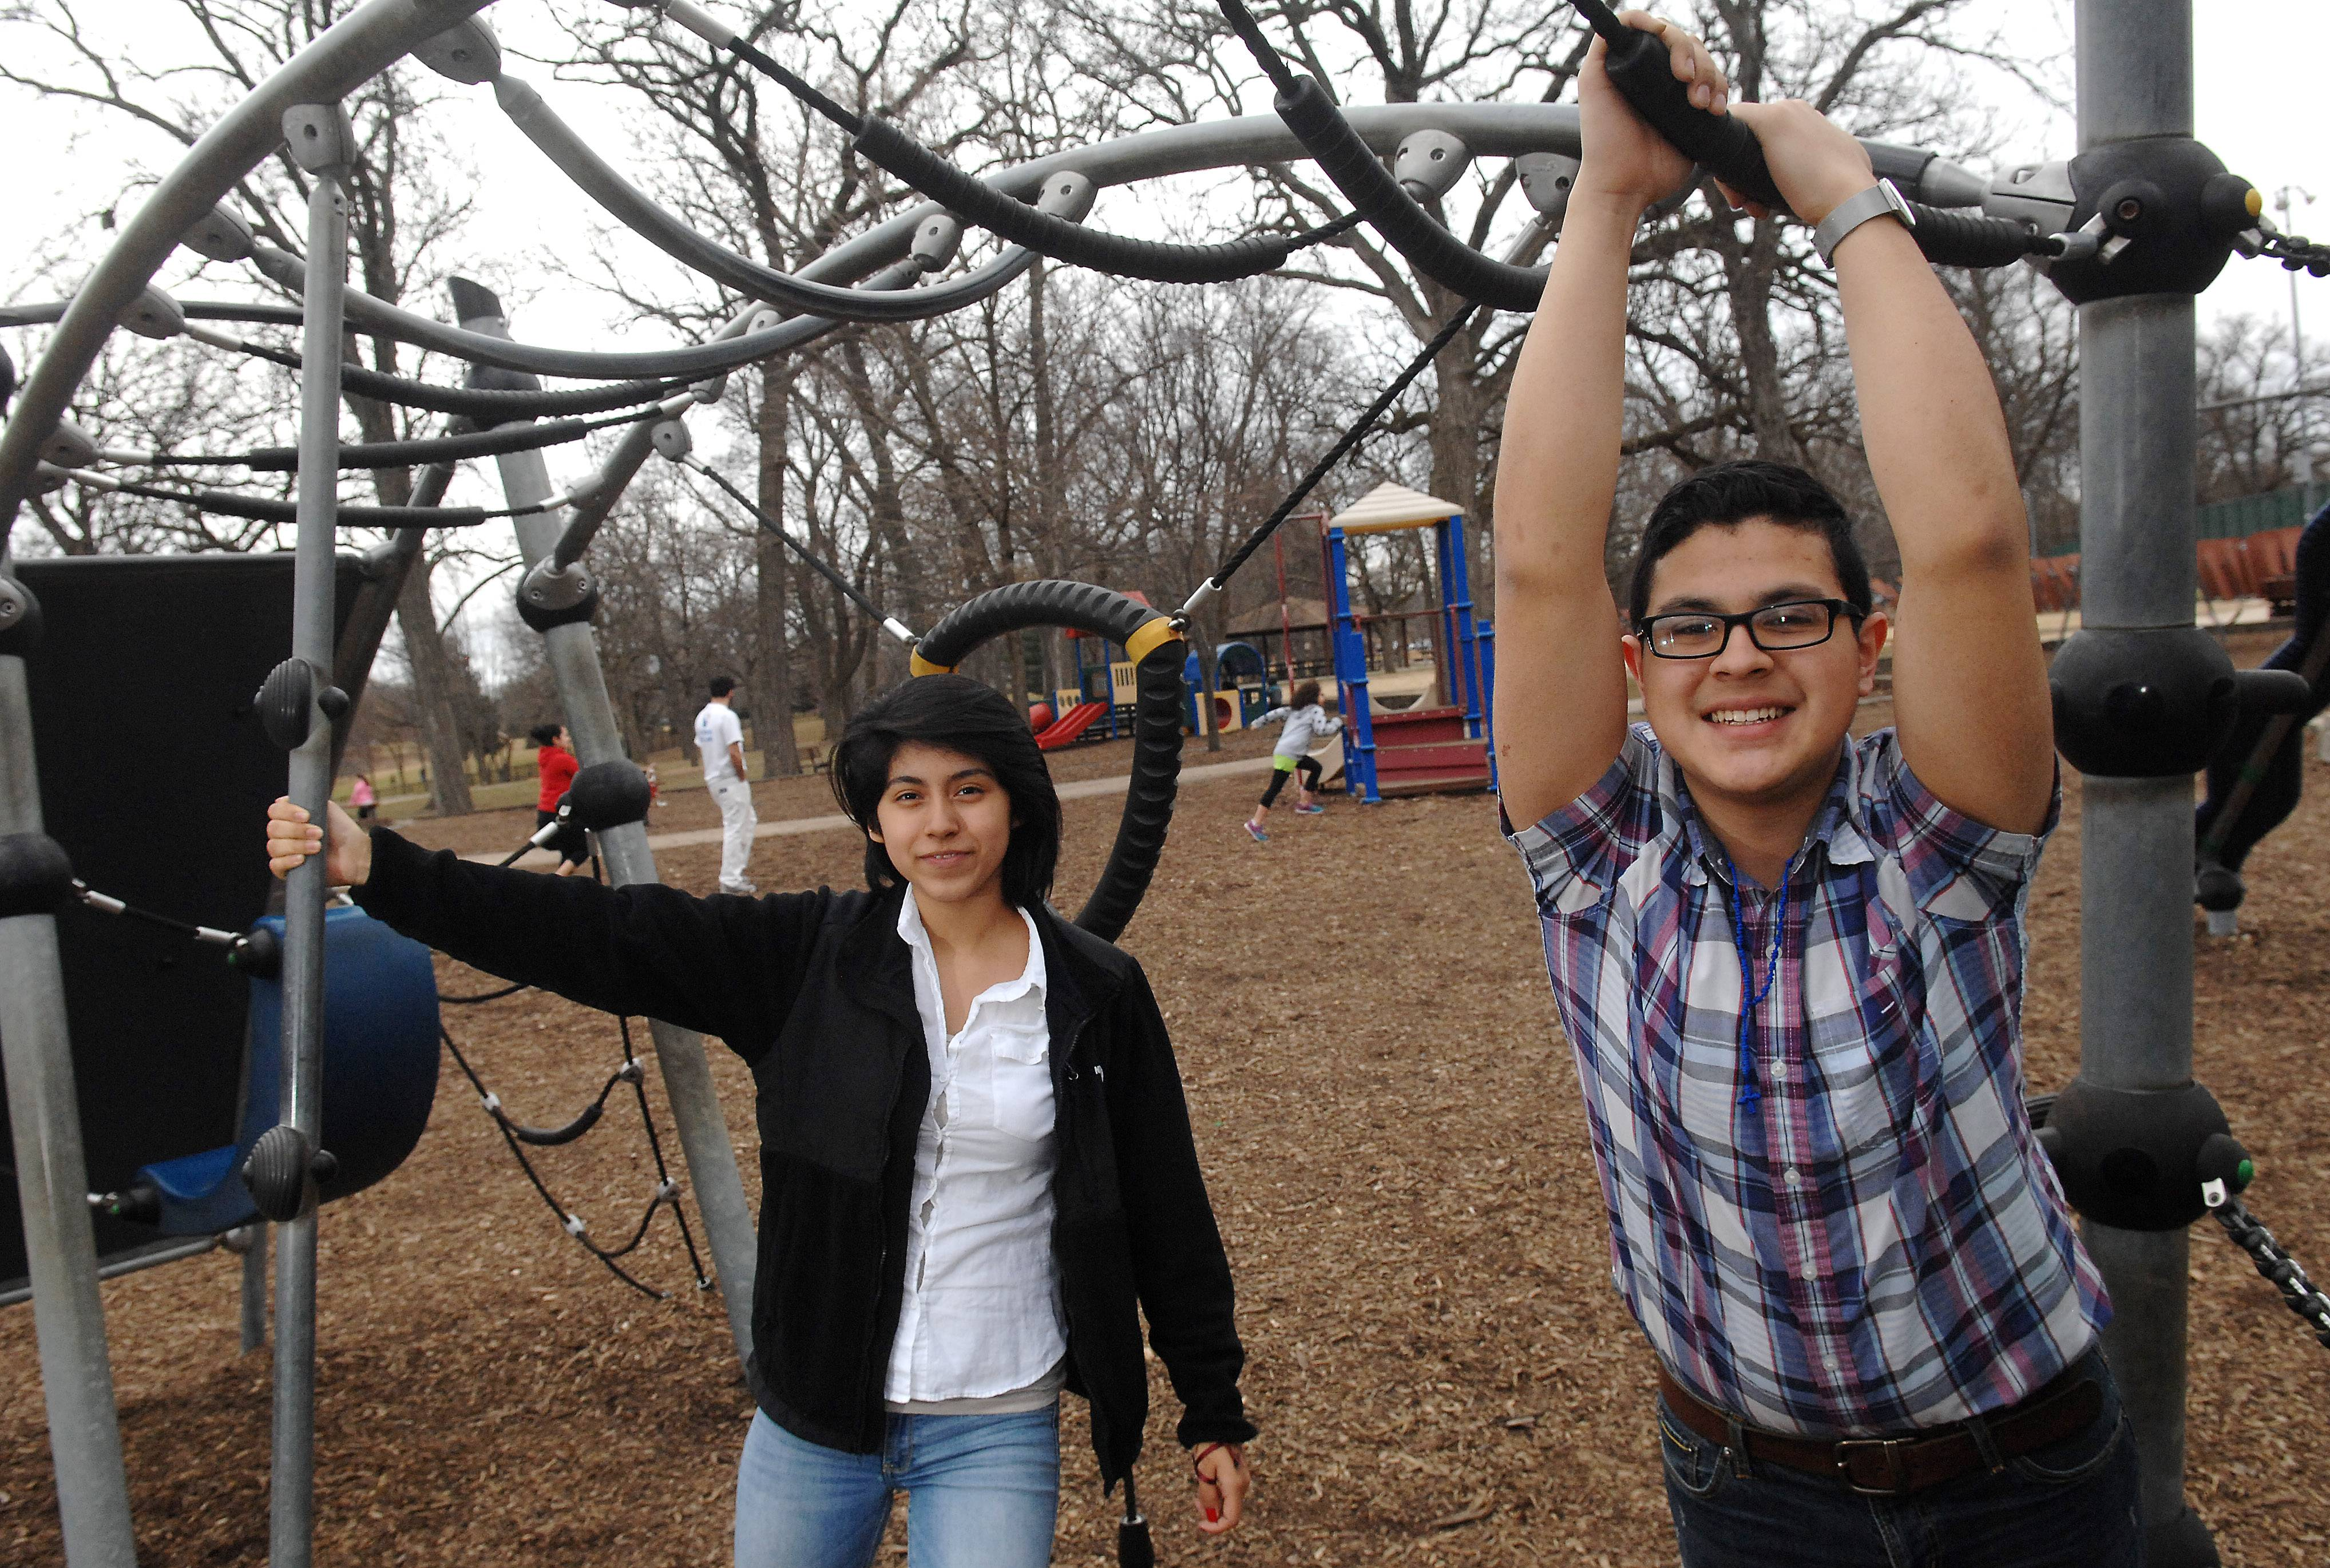 Students want smoke-free parks in Elgin